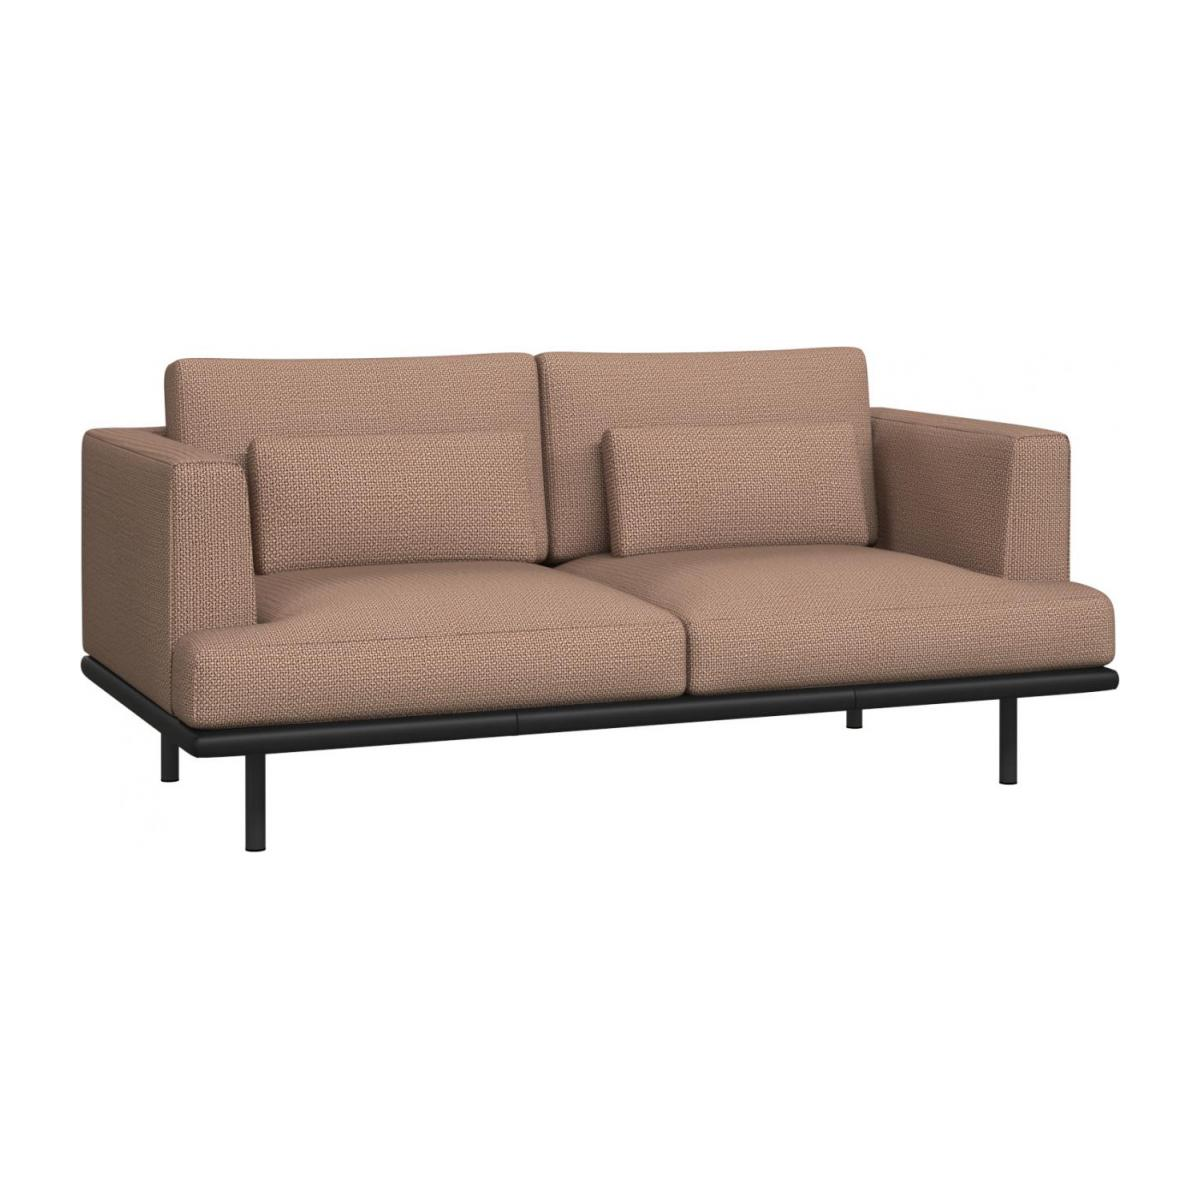 2 seater sofa in Fasoli fabric, jatoba brown with base in black leather n°1